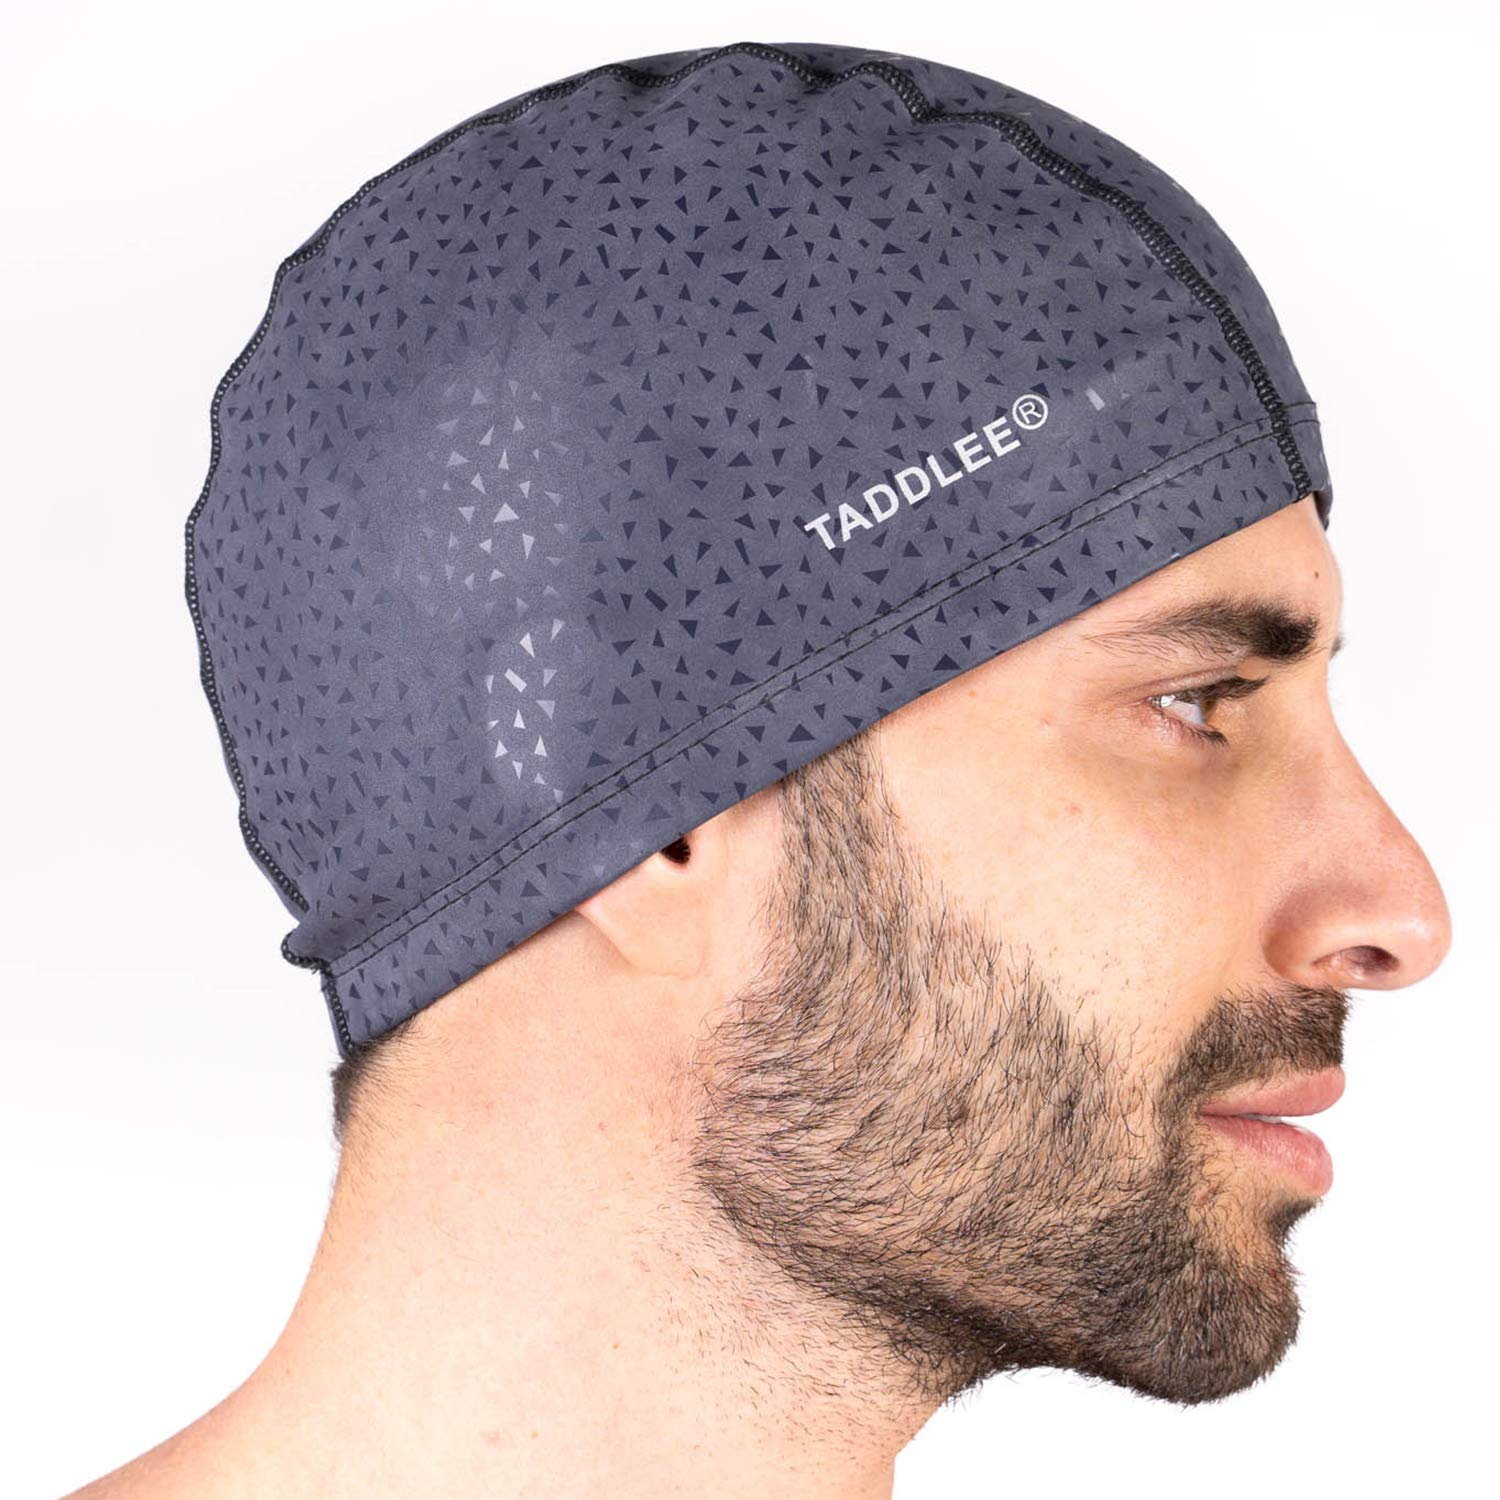 Taddlee Men Swim Cap PU Fabric Silicone Lycra Swimming Hat Pool Waterproof Sports Adult Swim Wear Accessories Large Size Outdoor